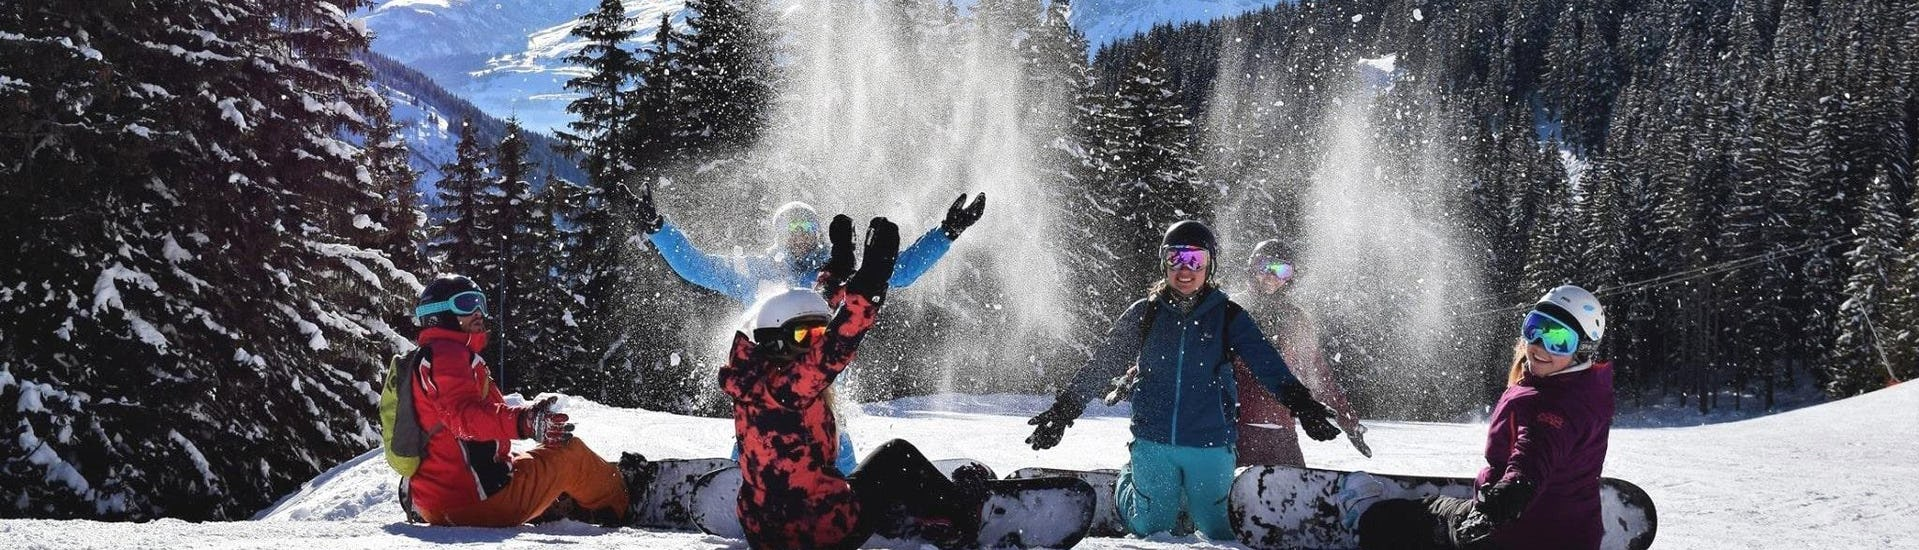 private-snowboarding-lessons-all-levels-and-ages-ecole-ski-360-avoriaz-hero